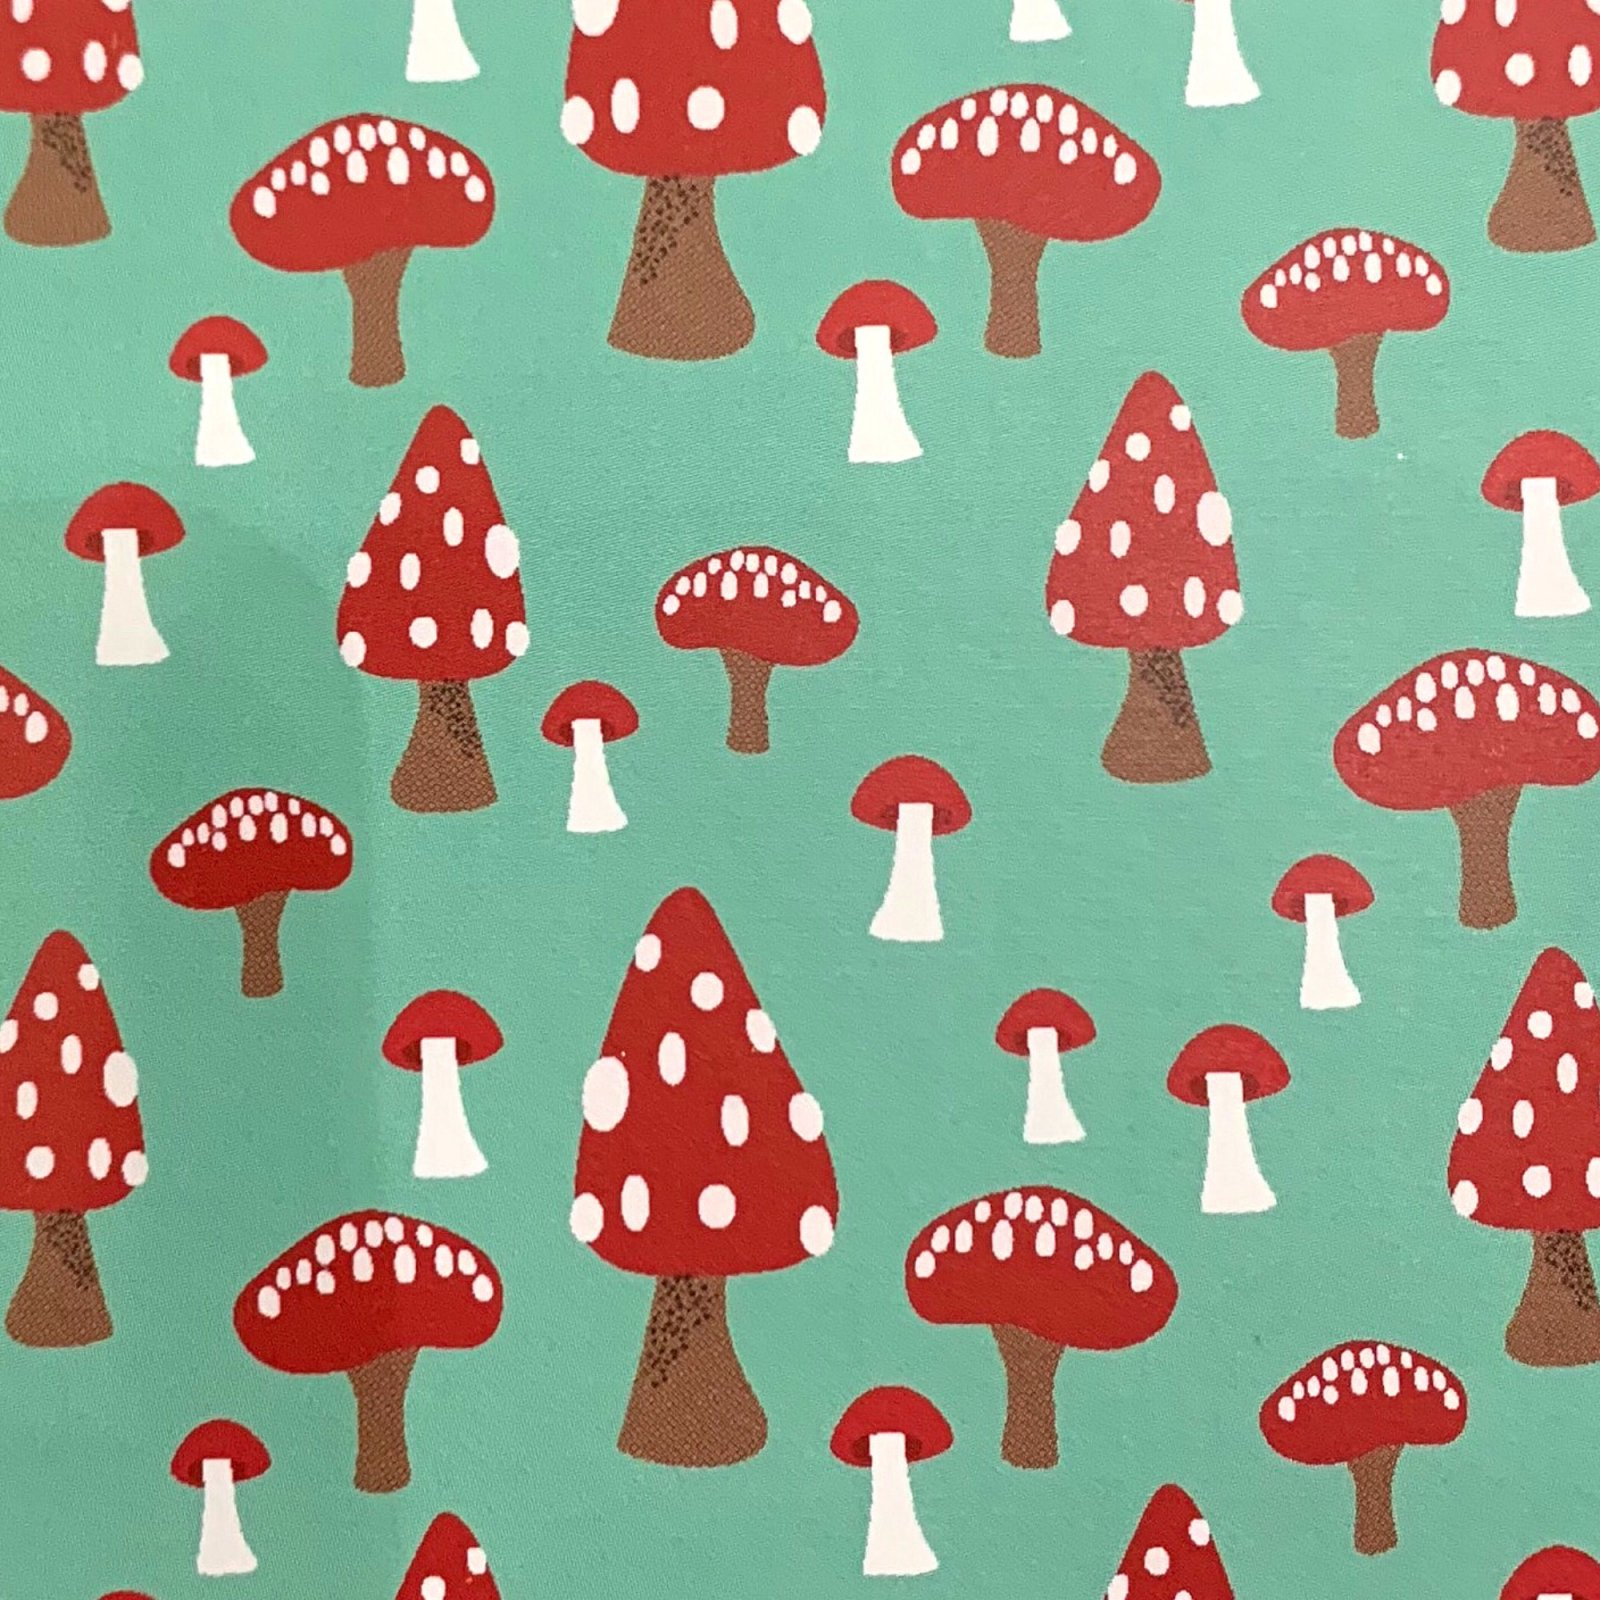 COMING SOON! Mushrooms a Retro Scandinavian Style Cotton Quilt Fabric